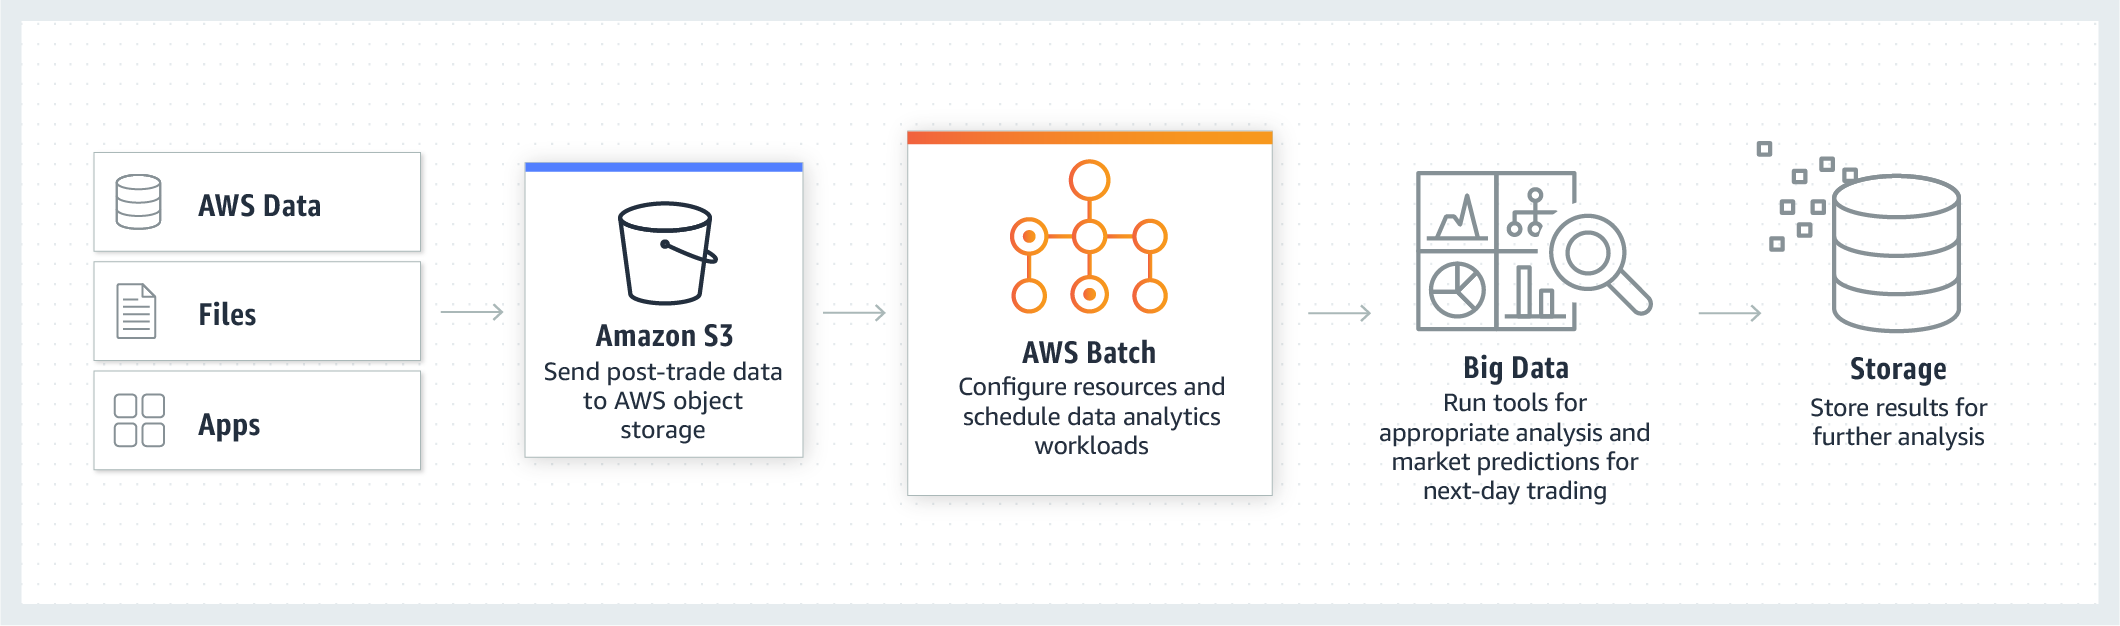 product-page-diagram-AWS-Batch_financial-services